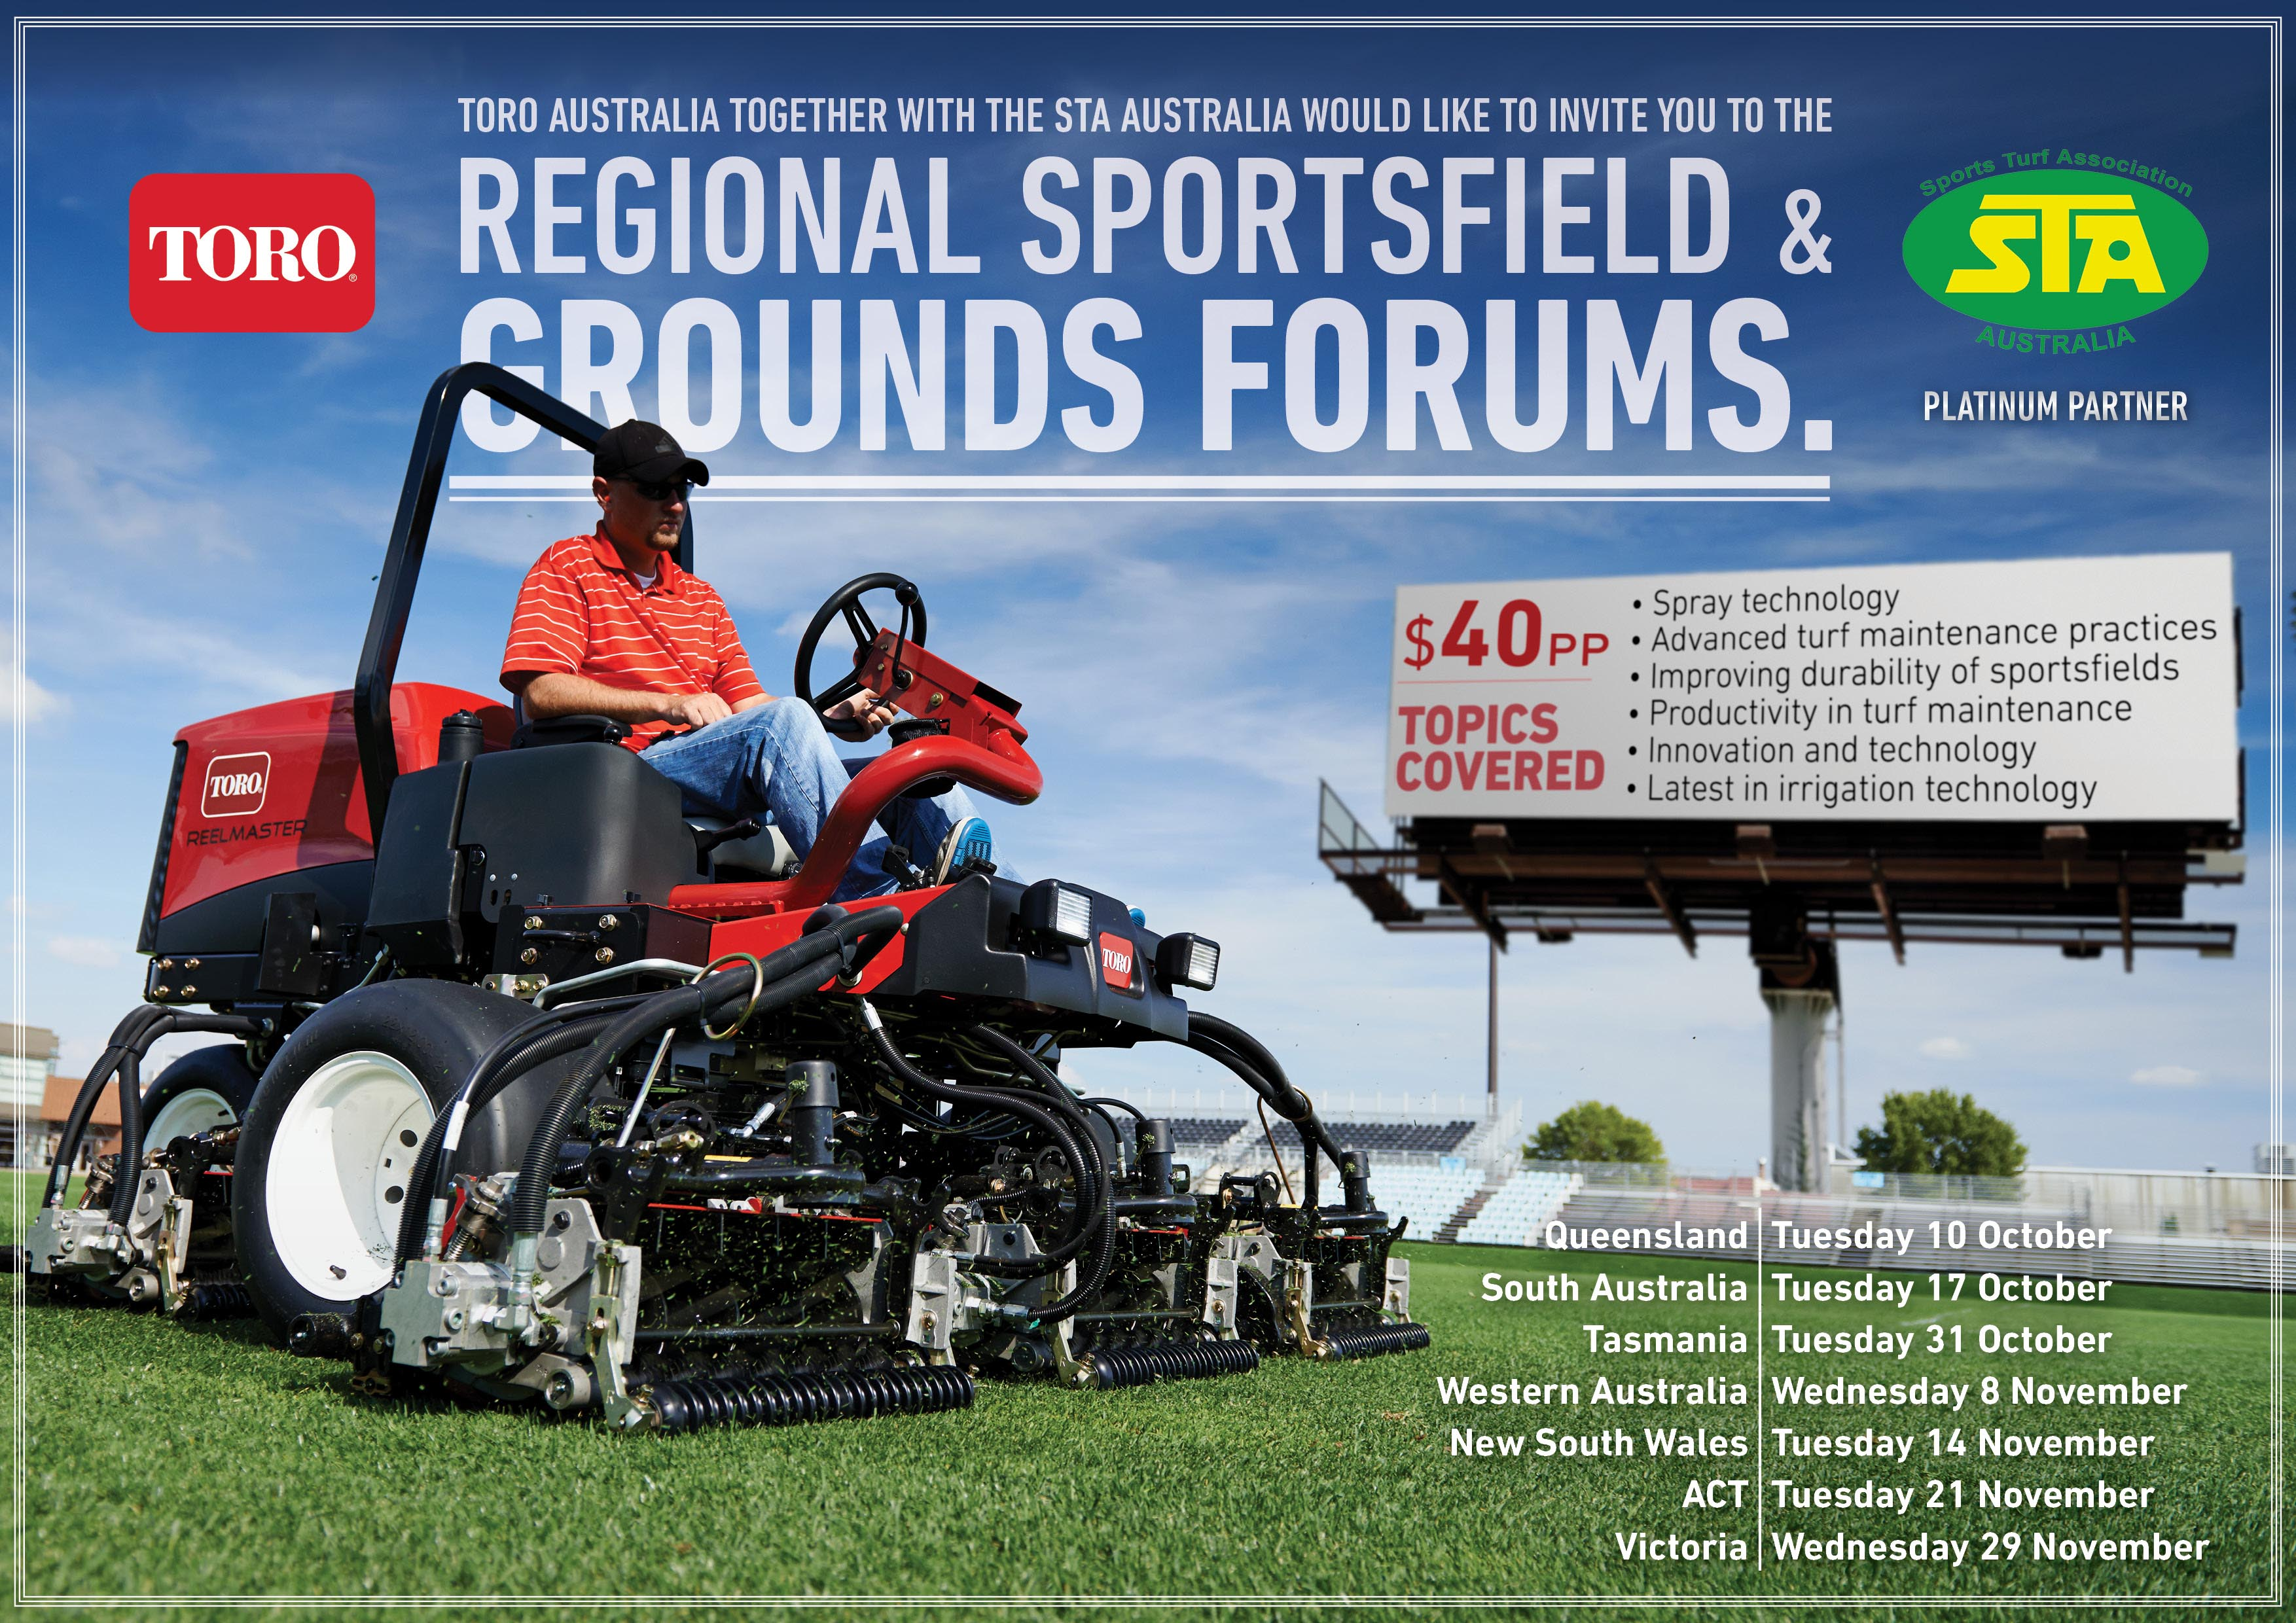 Regional Sportsfield & Grounds Forums to be held around Australia